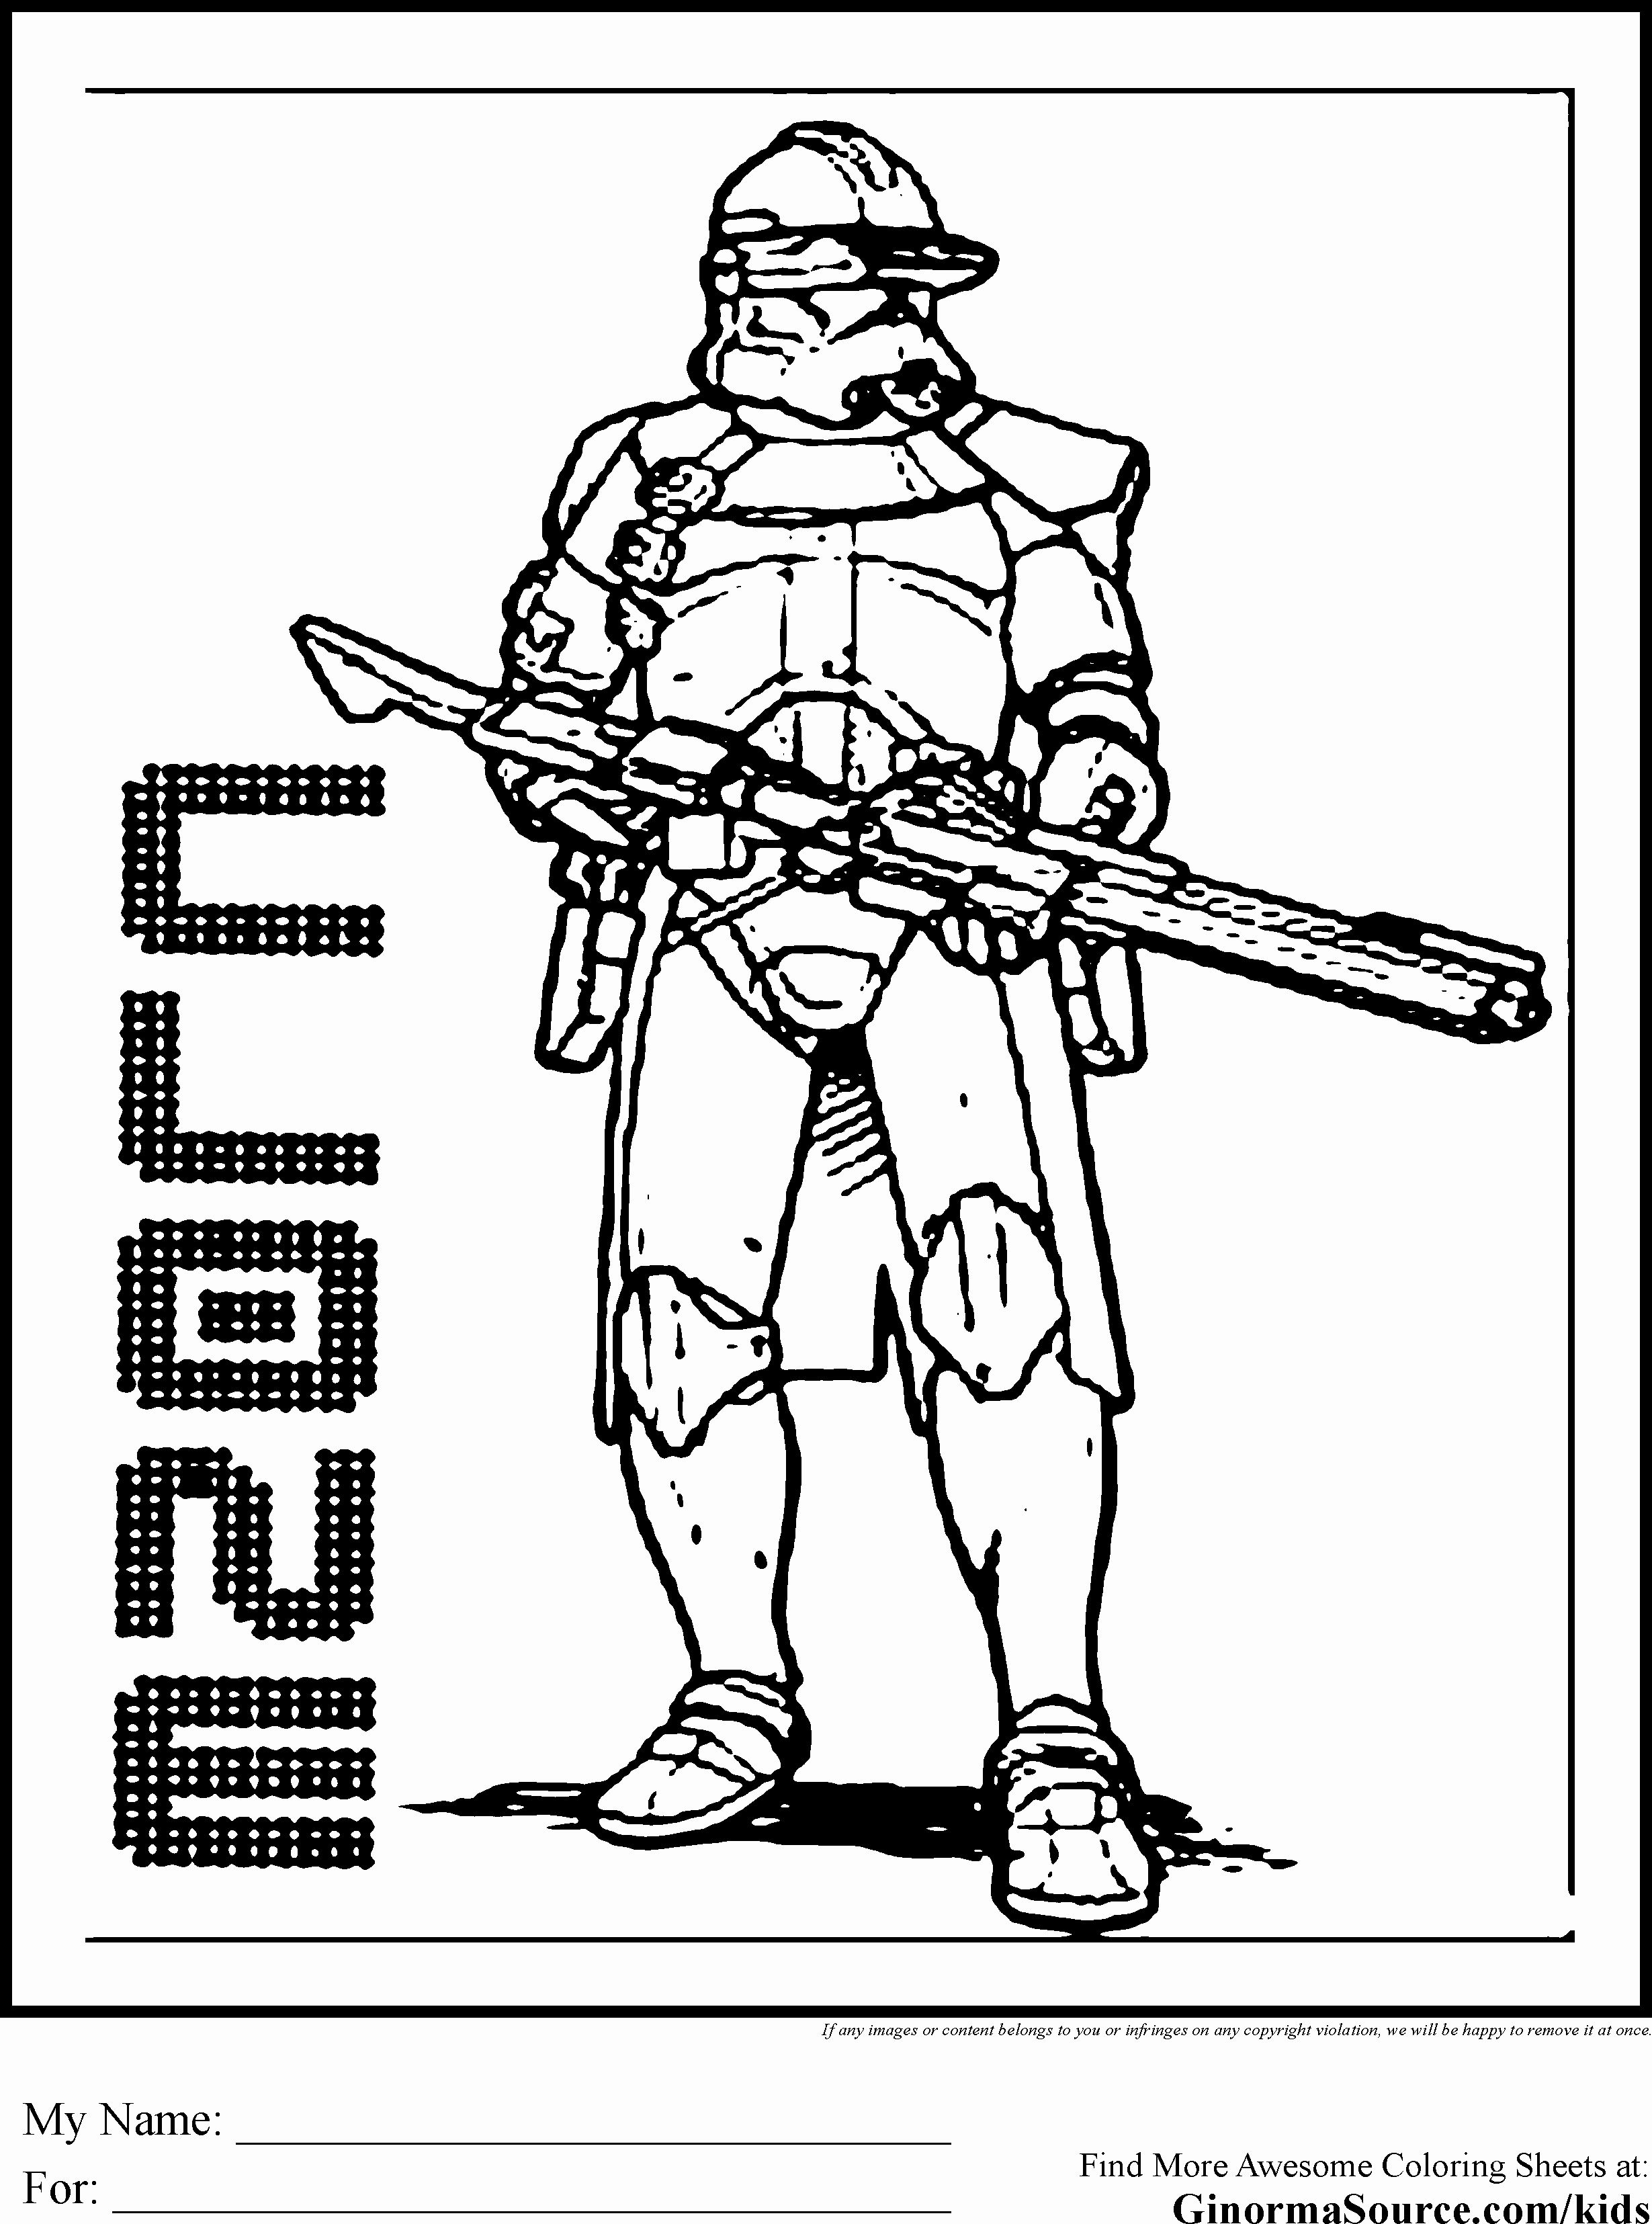 Star Wars Coloring Book Awesome Star Wars Coloring Pages Clone Star Wars Coloring Book Star Wars Drawings Coloring Books